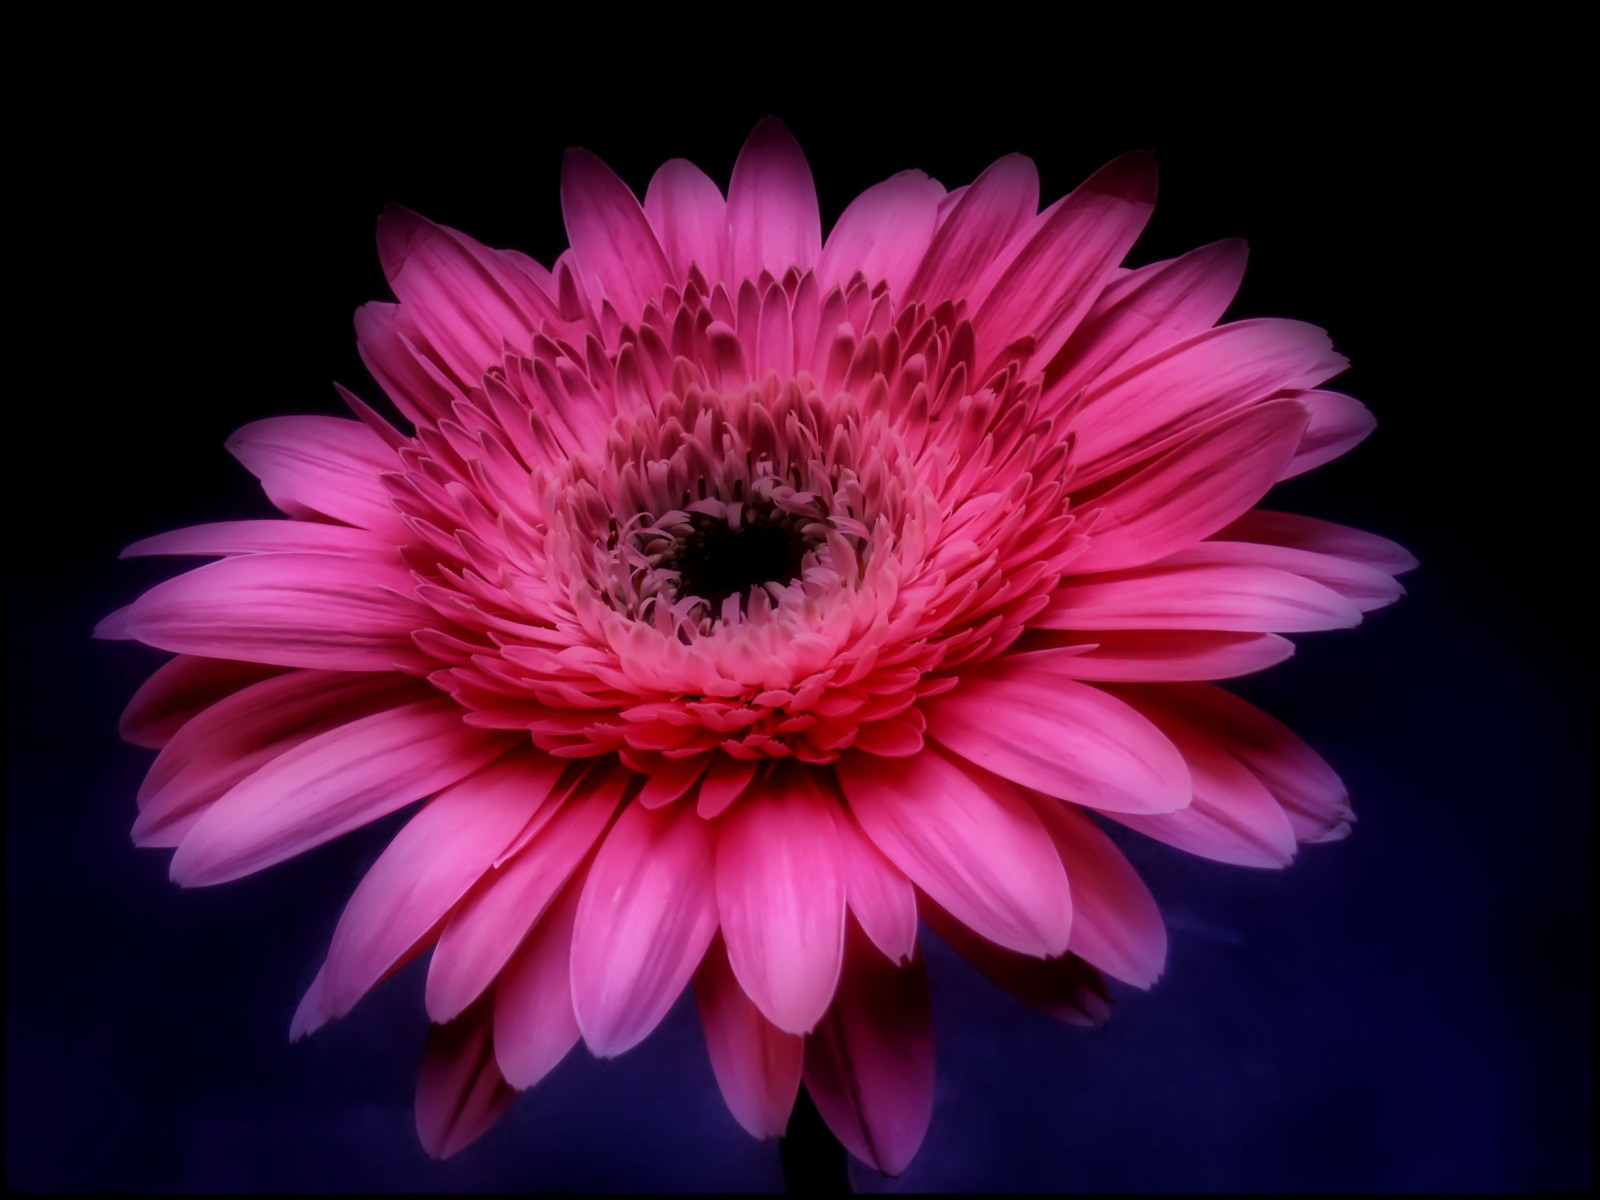 3d Nature Wallpapers Free Download For Pc Download Pink Gerbera Daisy Wallpaper Gallery